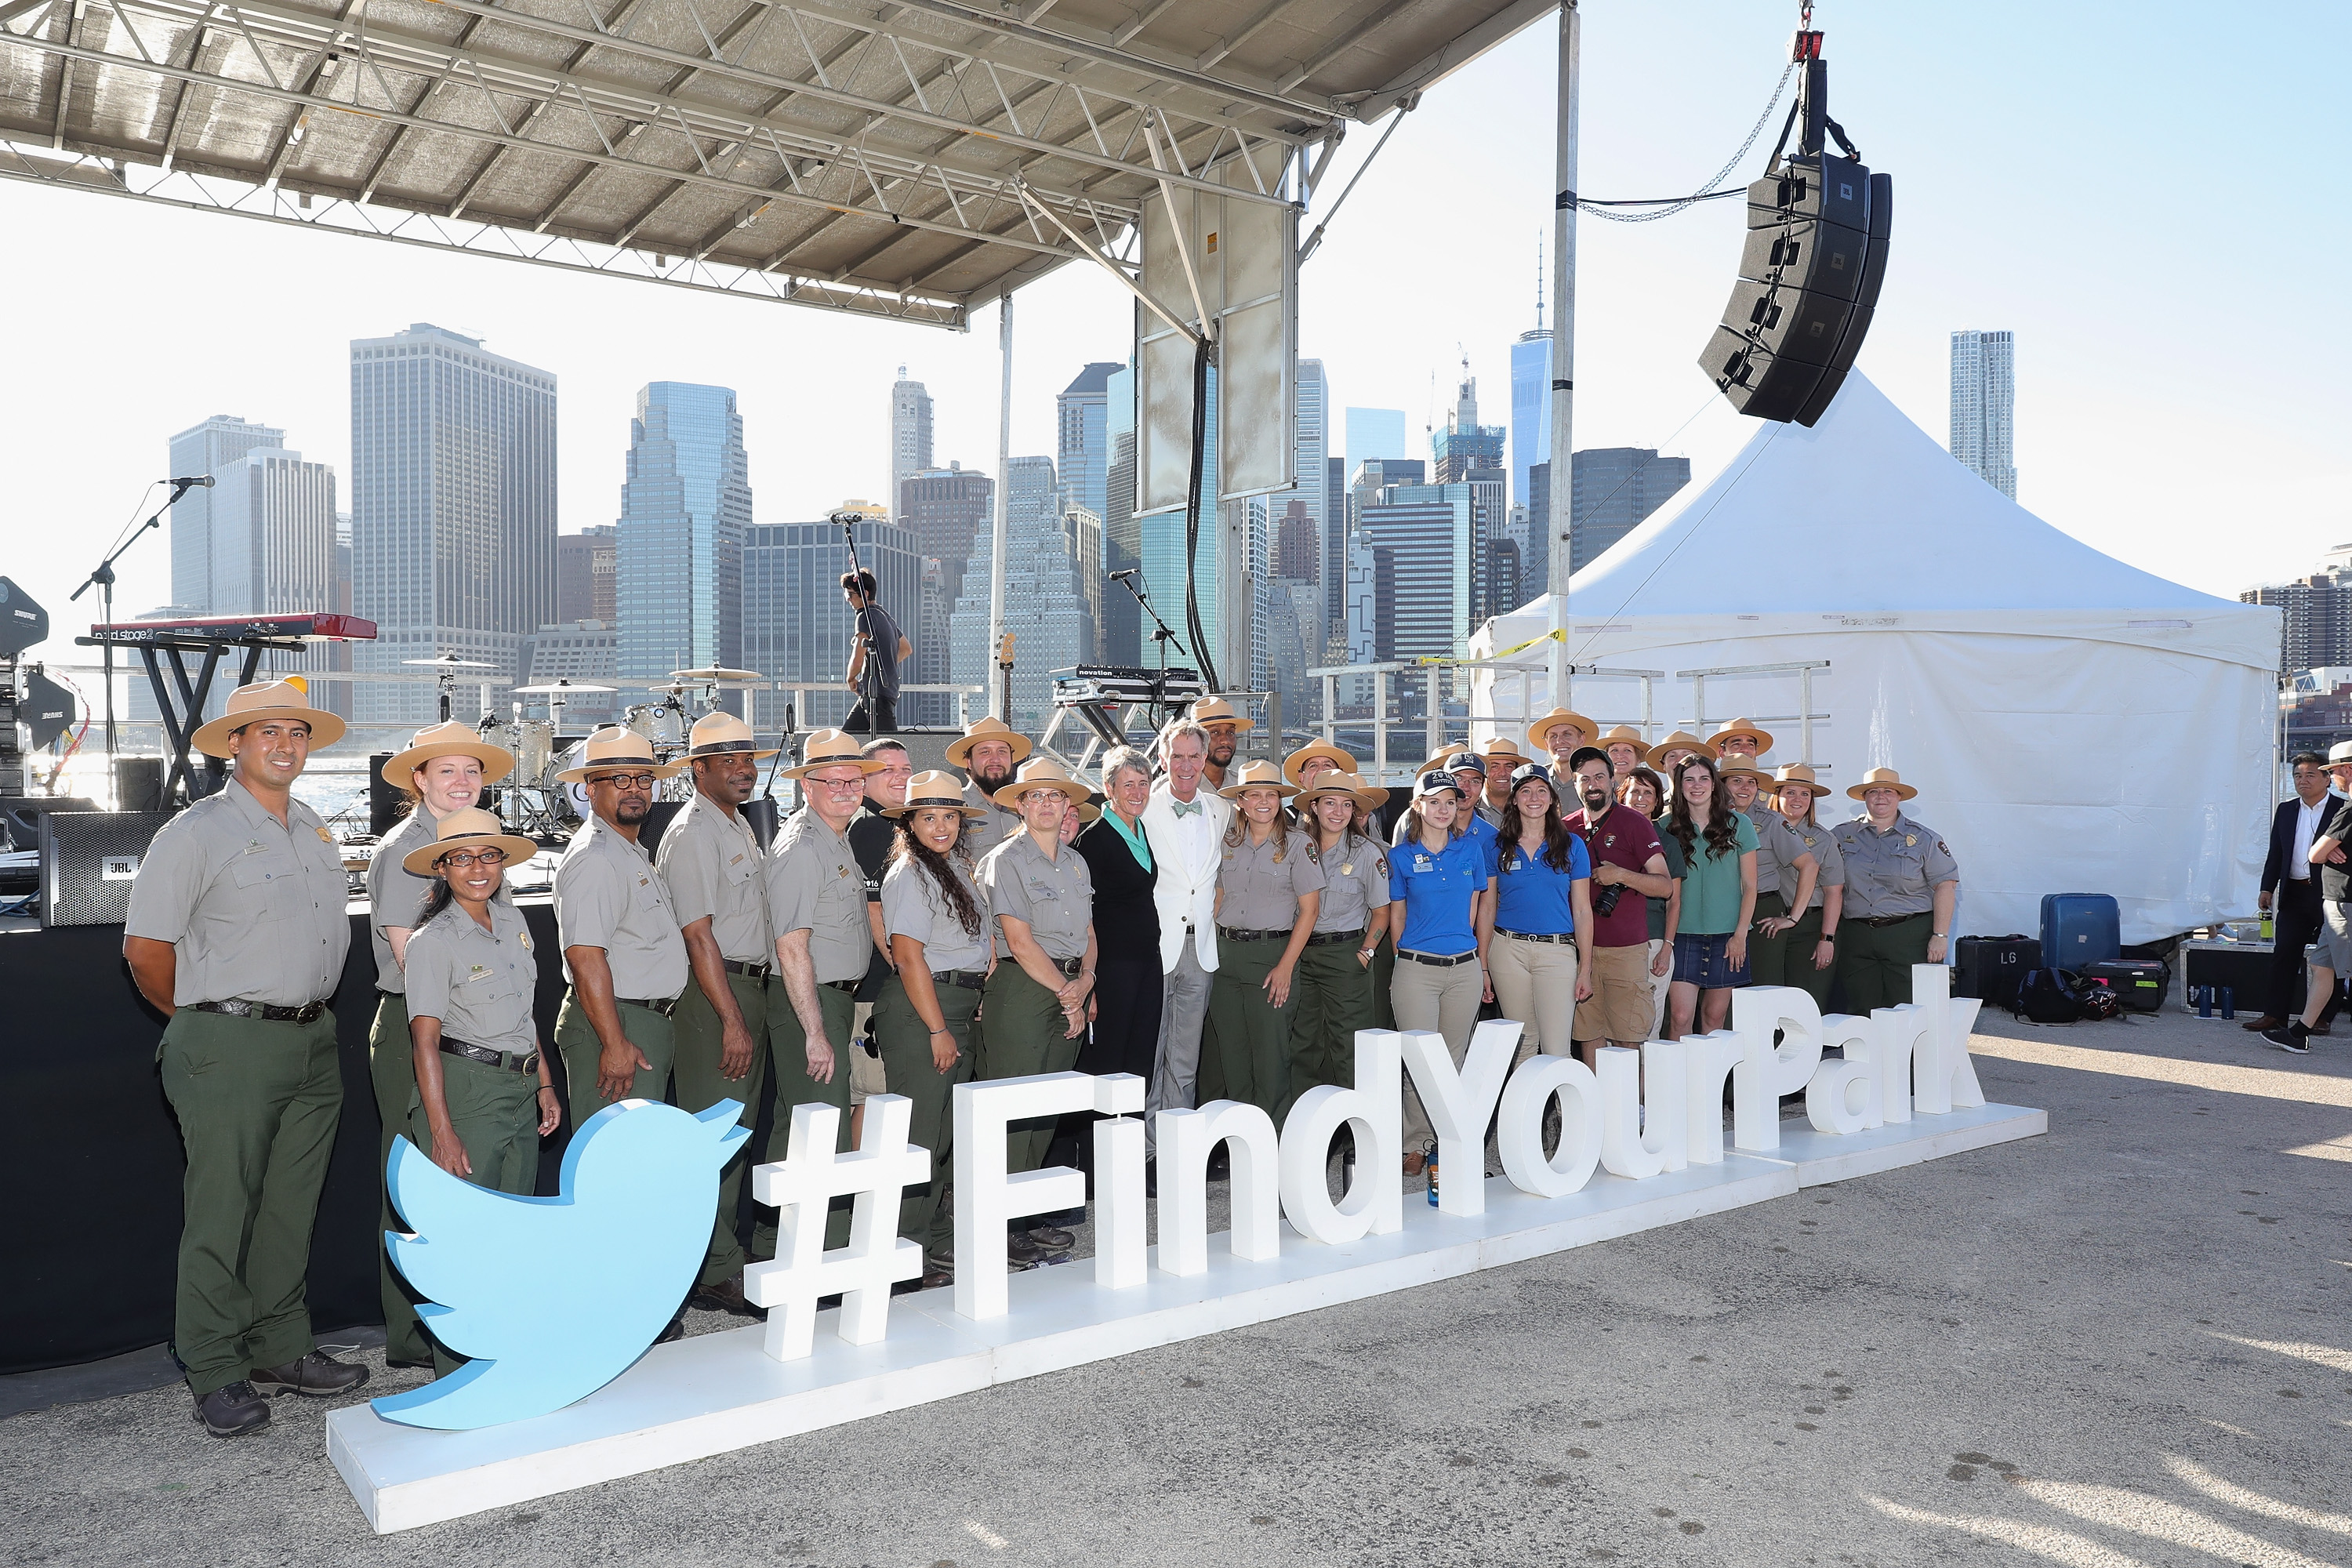 Secretary of the Interior Sally Jewell and Bill Nye join National Park Service Rangers and guests for a photo during the National Park Foundation's #FindYourPark event, celebrating the National Park Service's centennial at Brooklyn Bridge Park on August 22, 2016 in New York City.  (Getty)